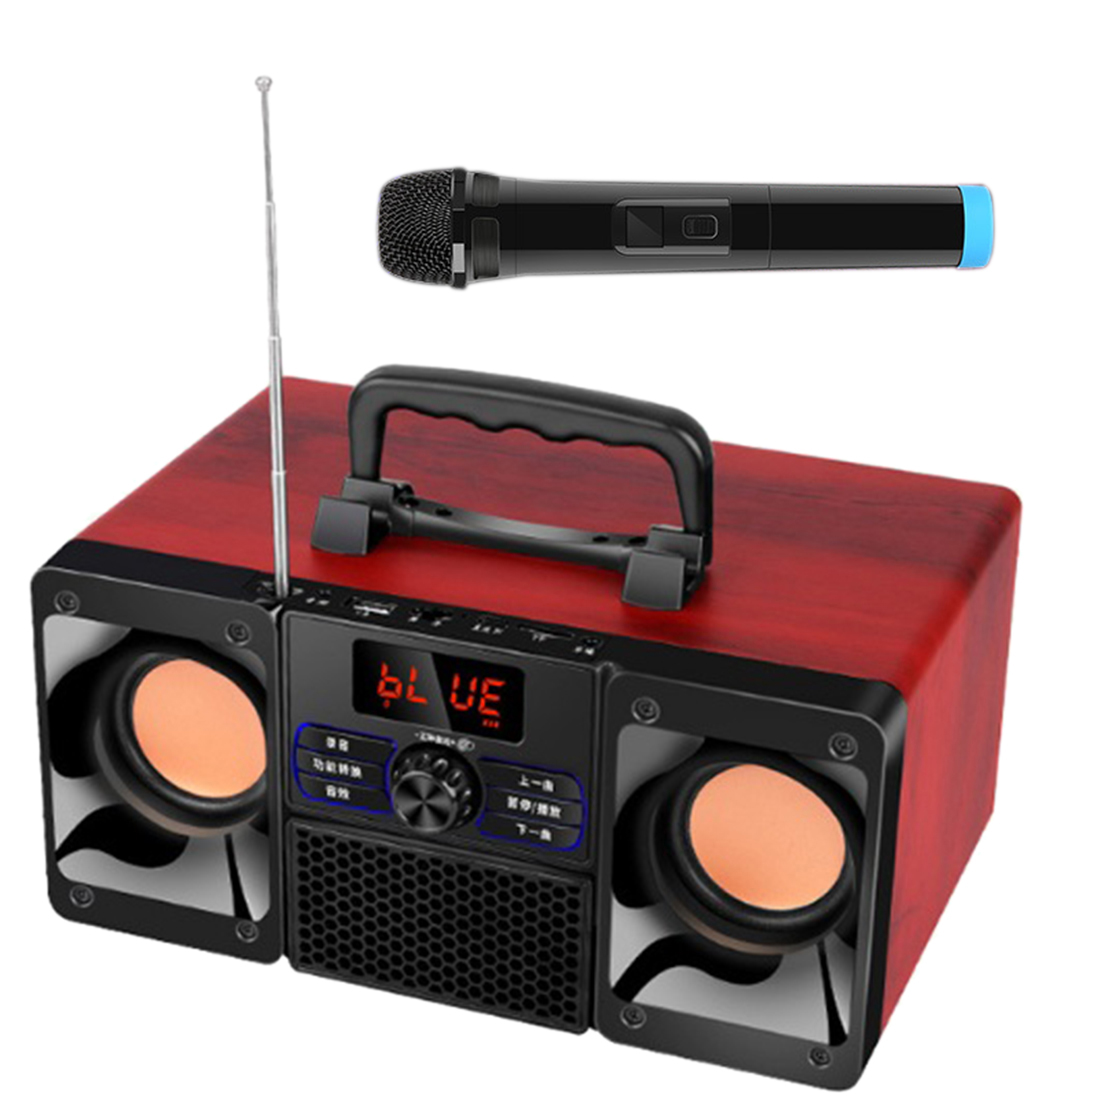 Portable Wooden Box Karaoke Machine Bluetooth Double Bass Speaker Multi-Function Amplifier With Phone Holder And Microphone -Red